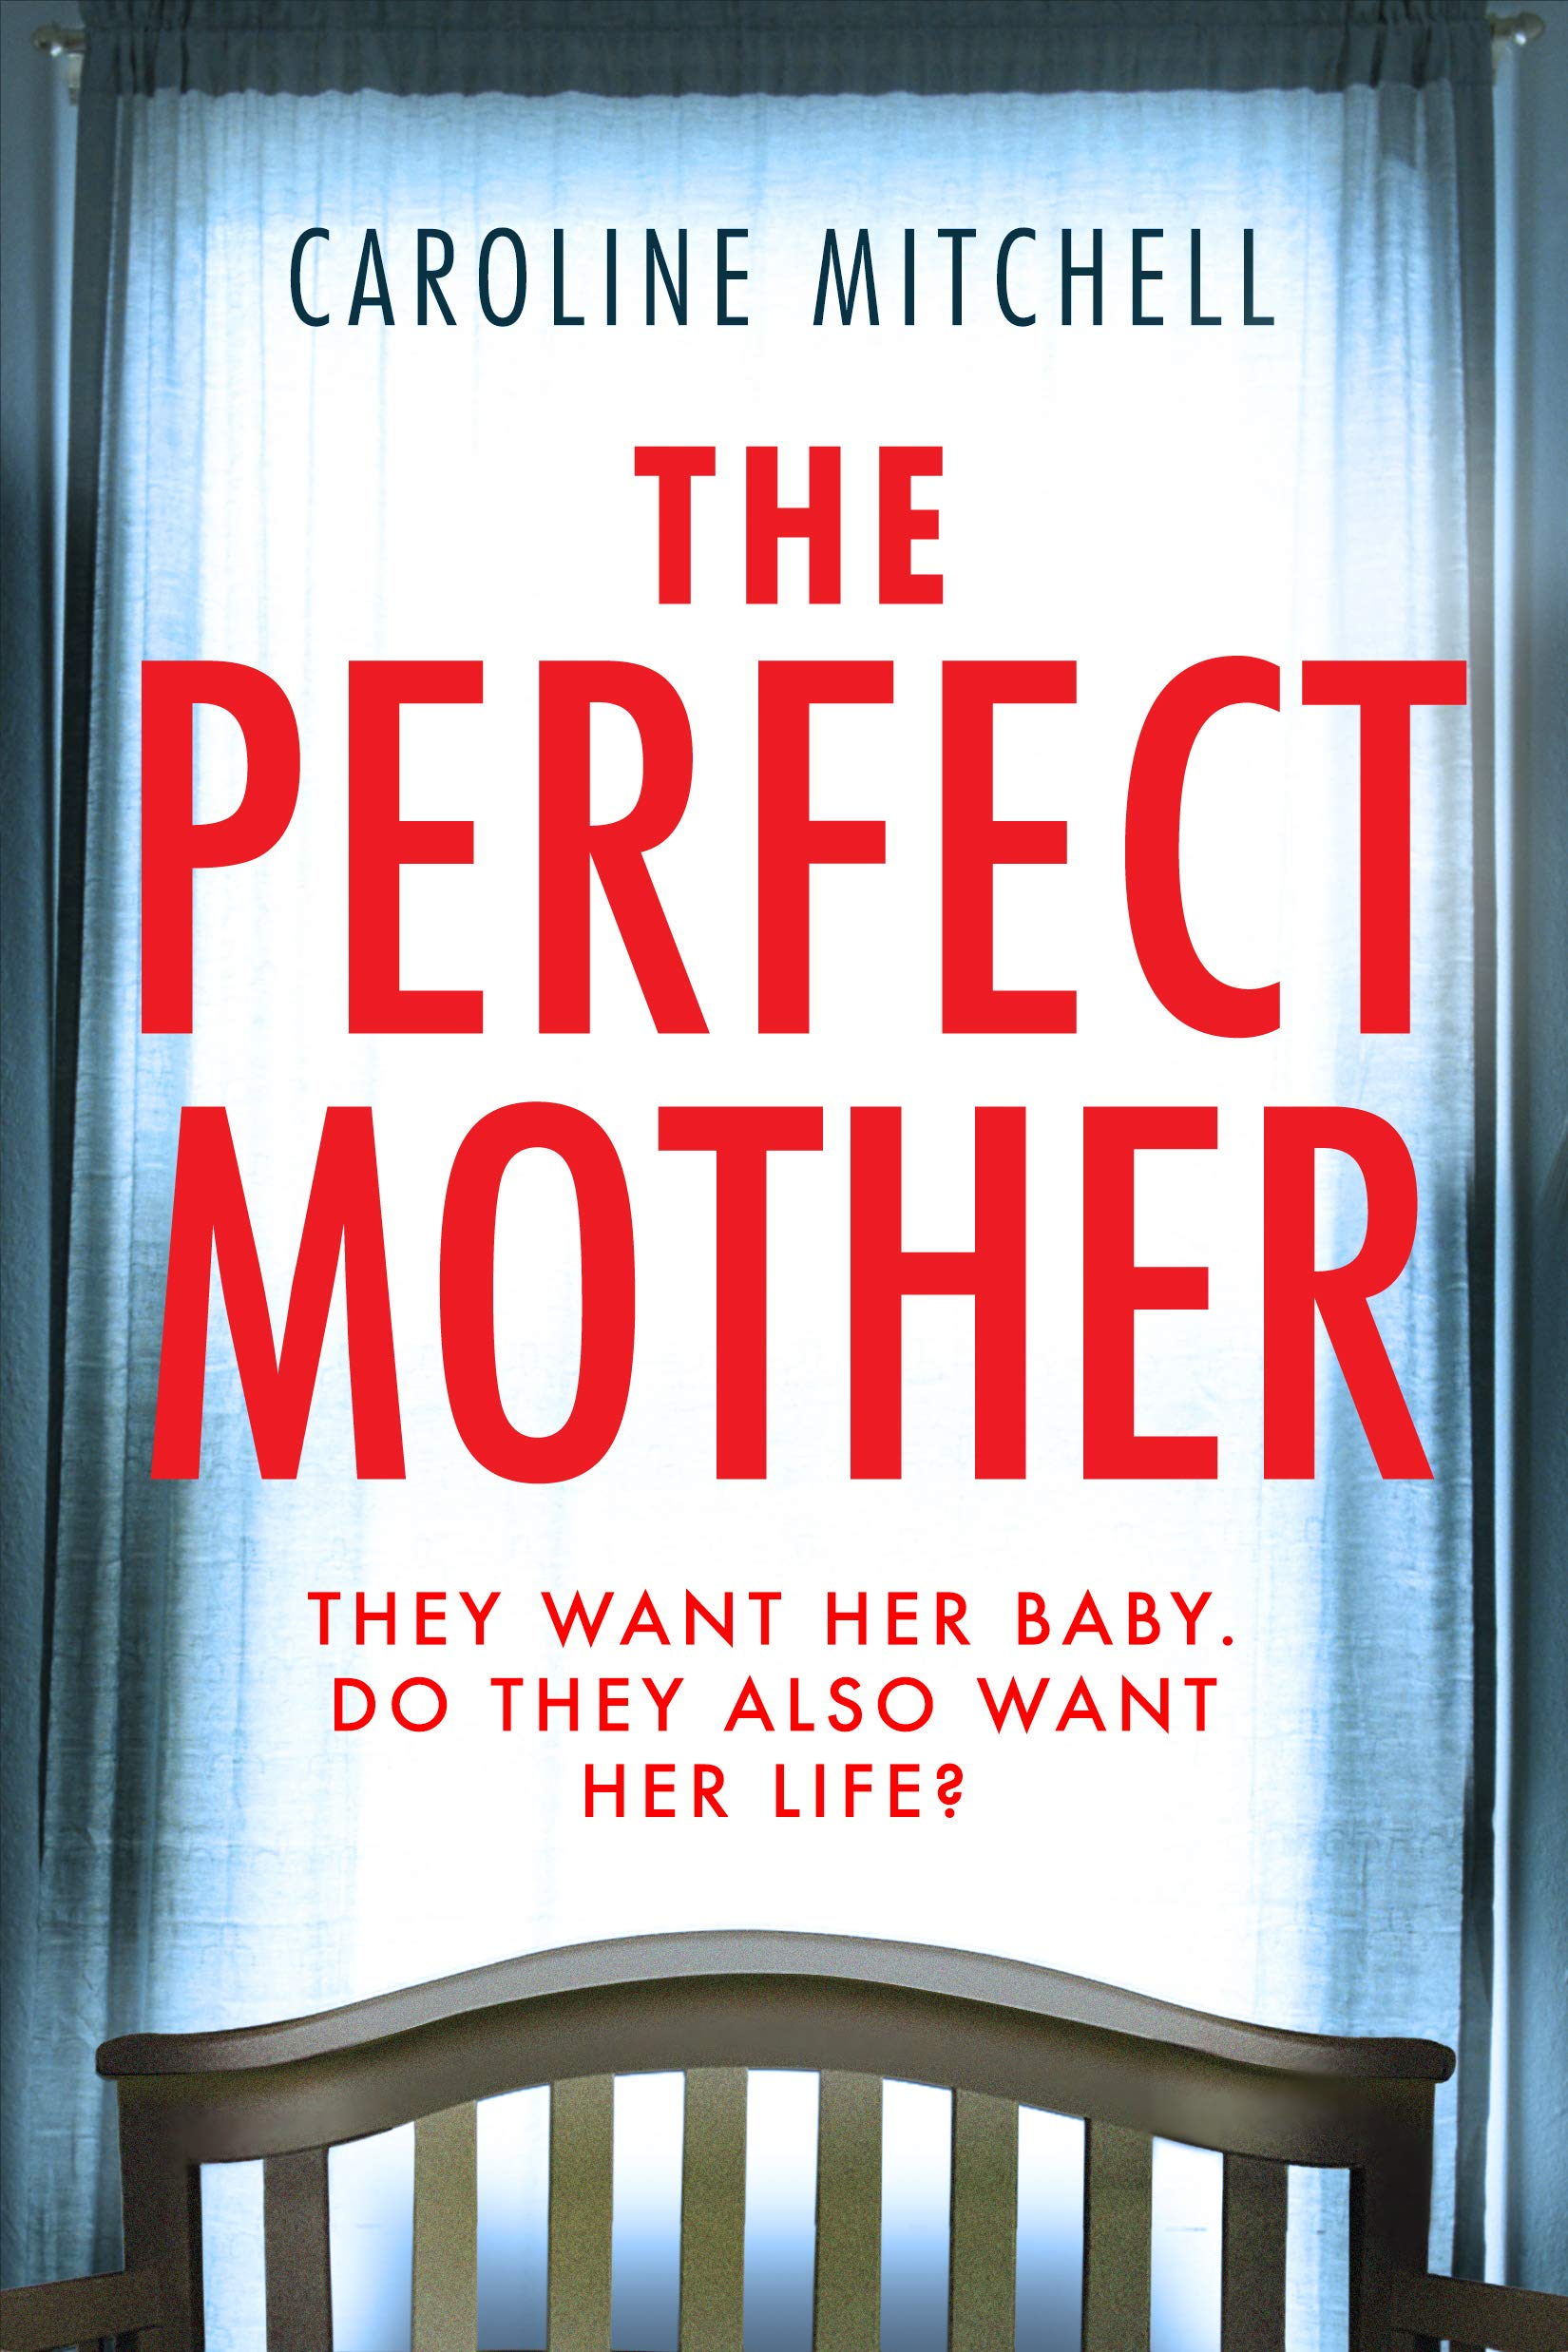 The Perfect Mother by Caroline Mitchell